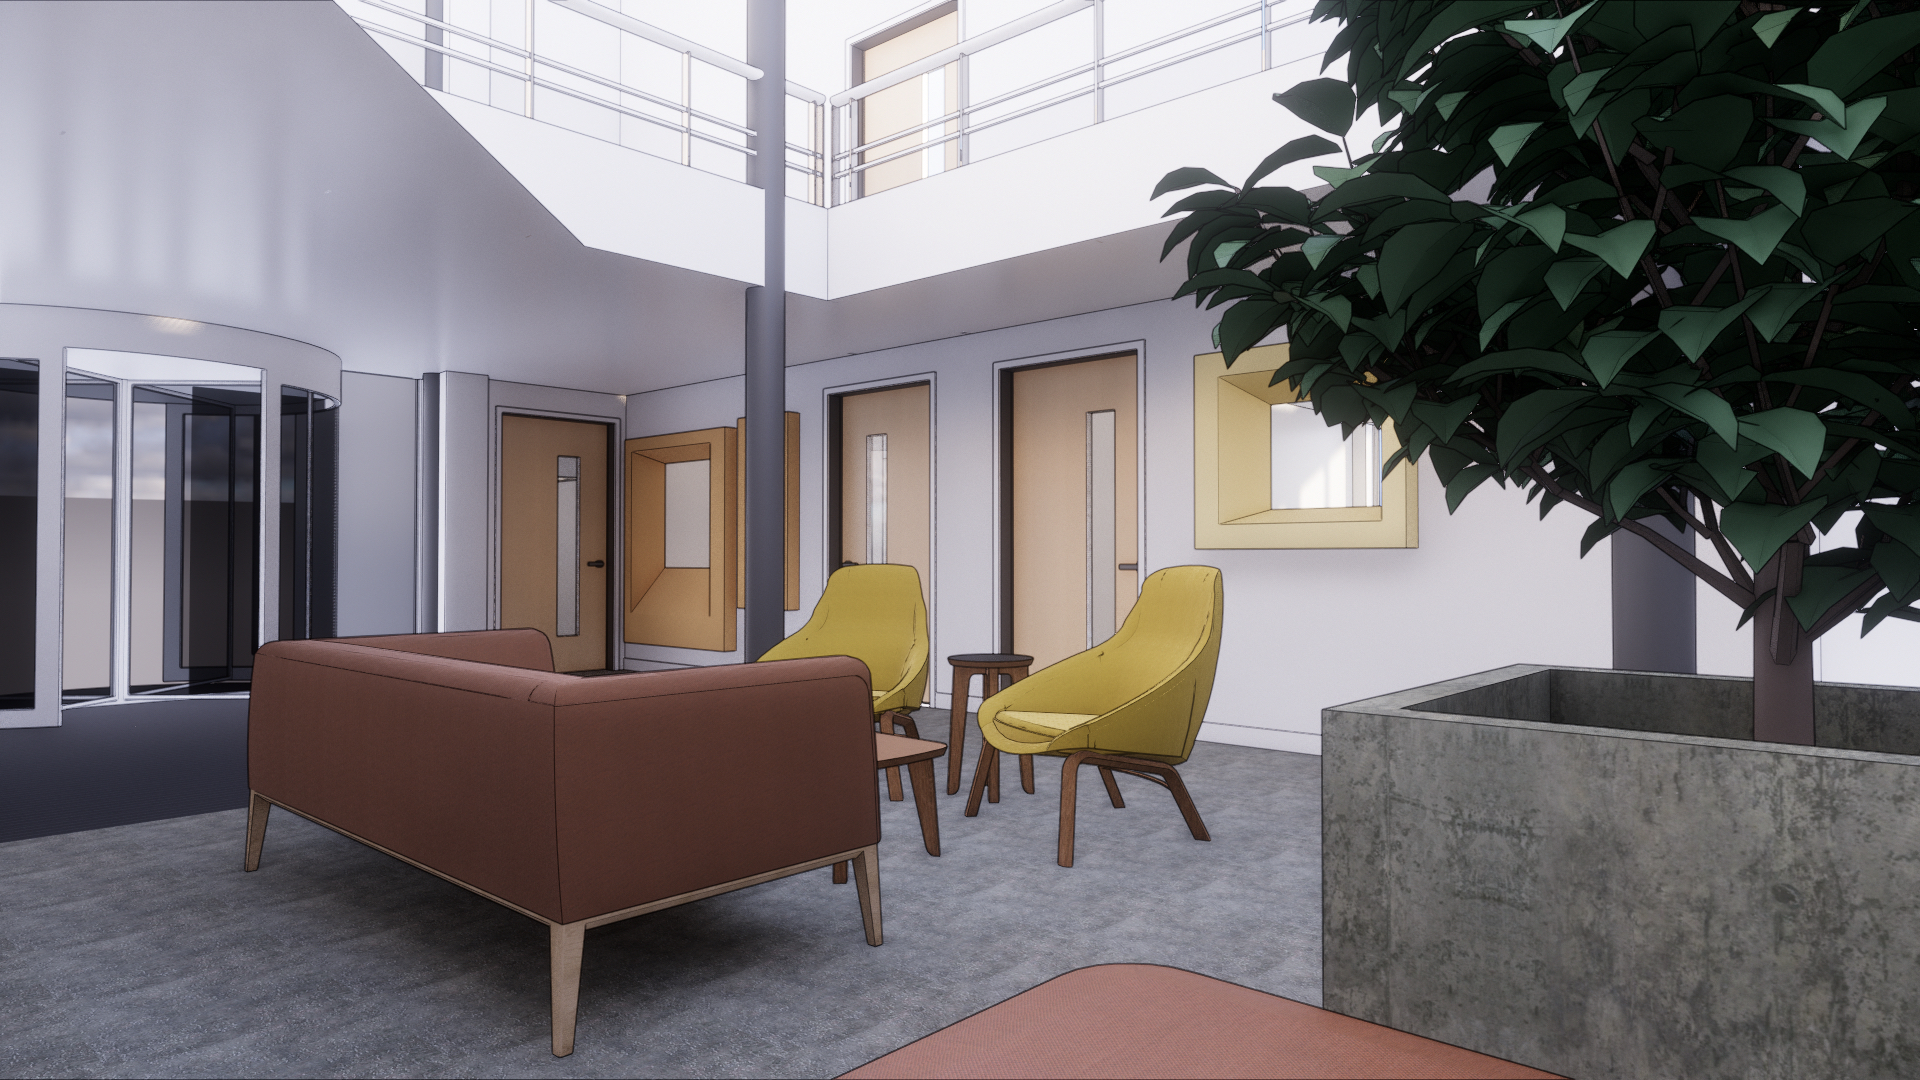 Work starts on refurbishment of Innovation Suite at Arts University Bournemouth